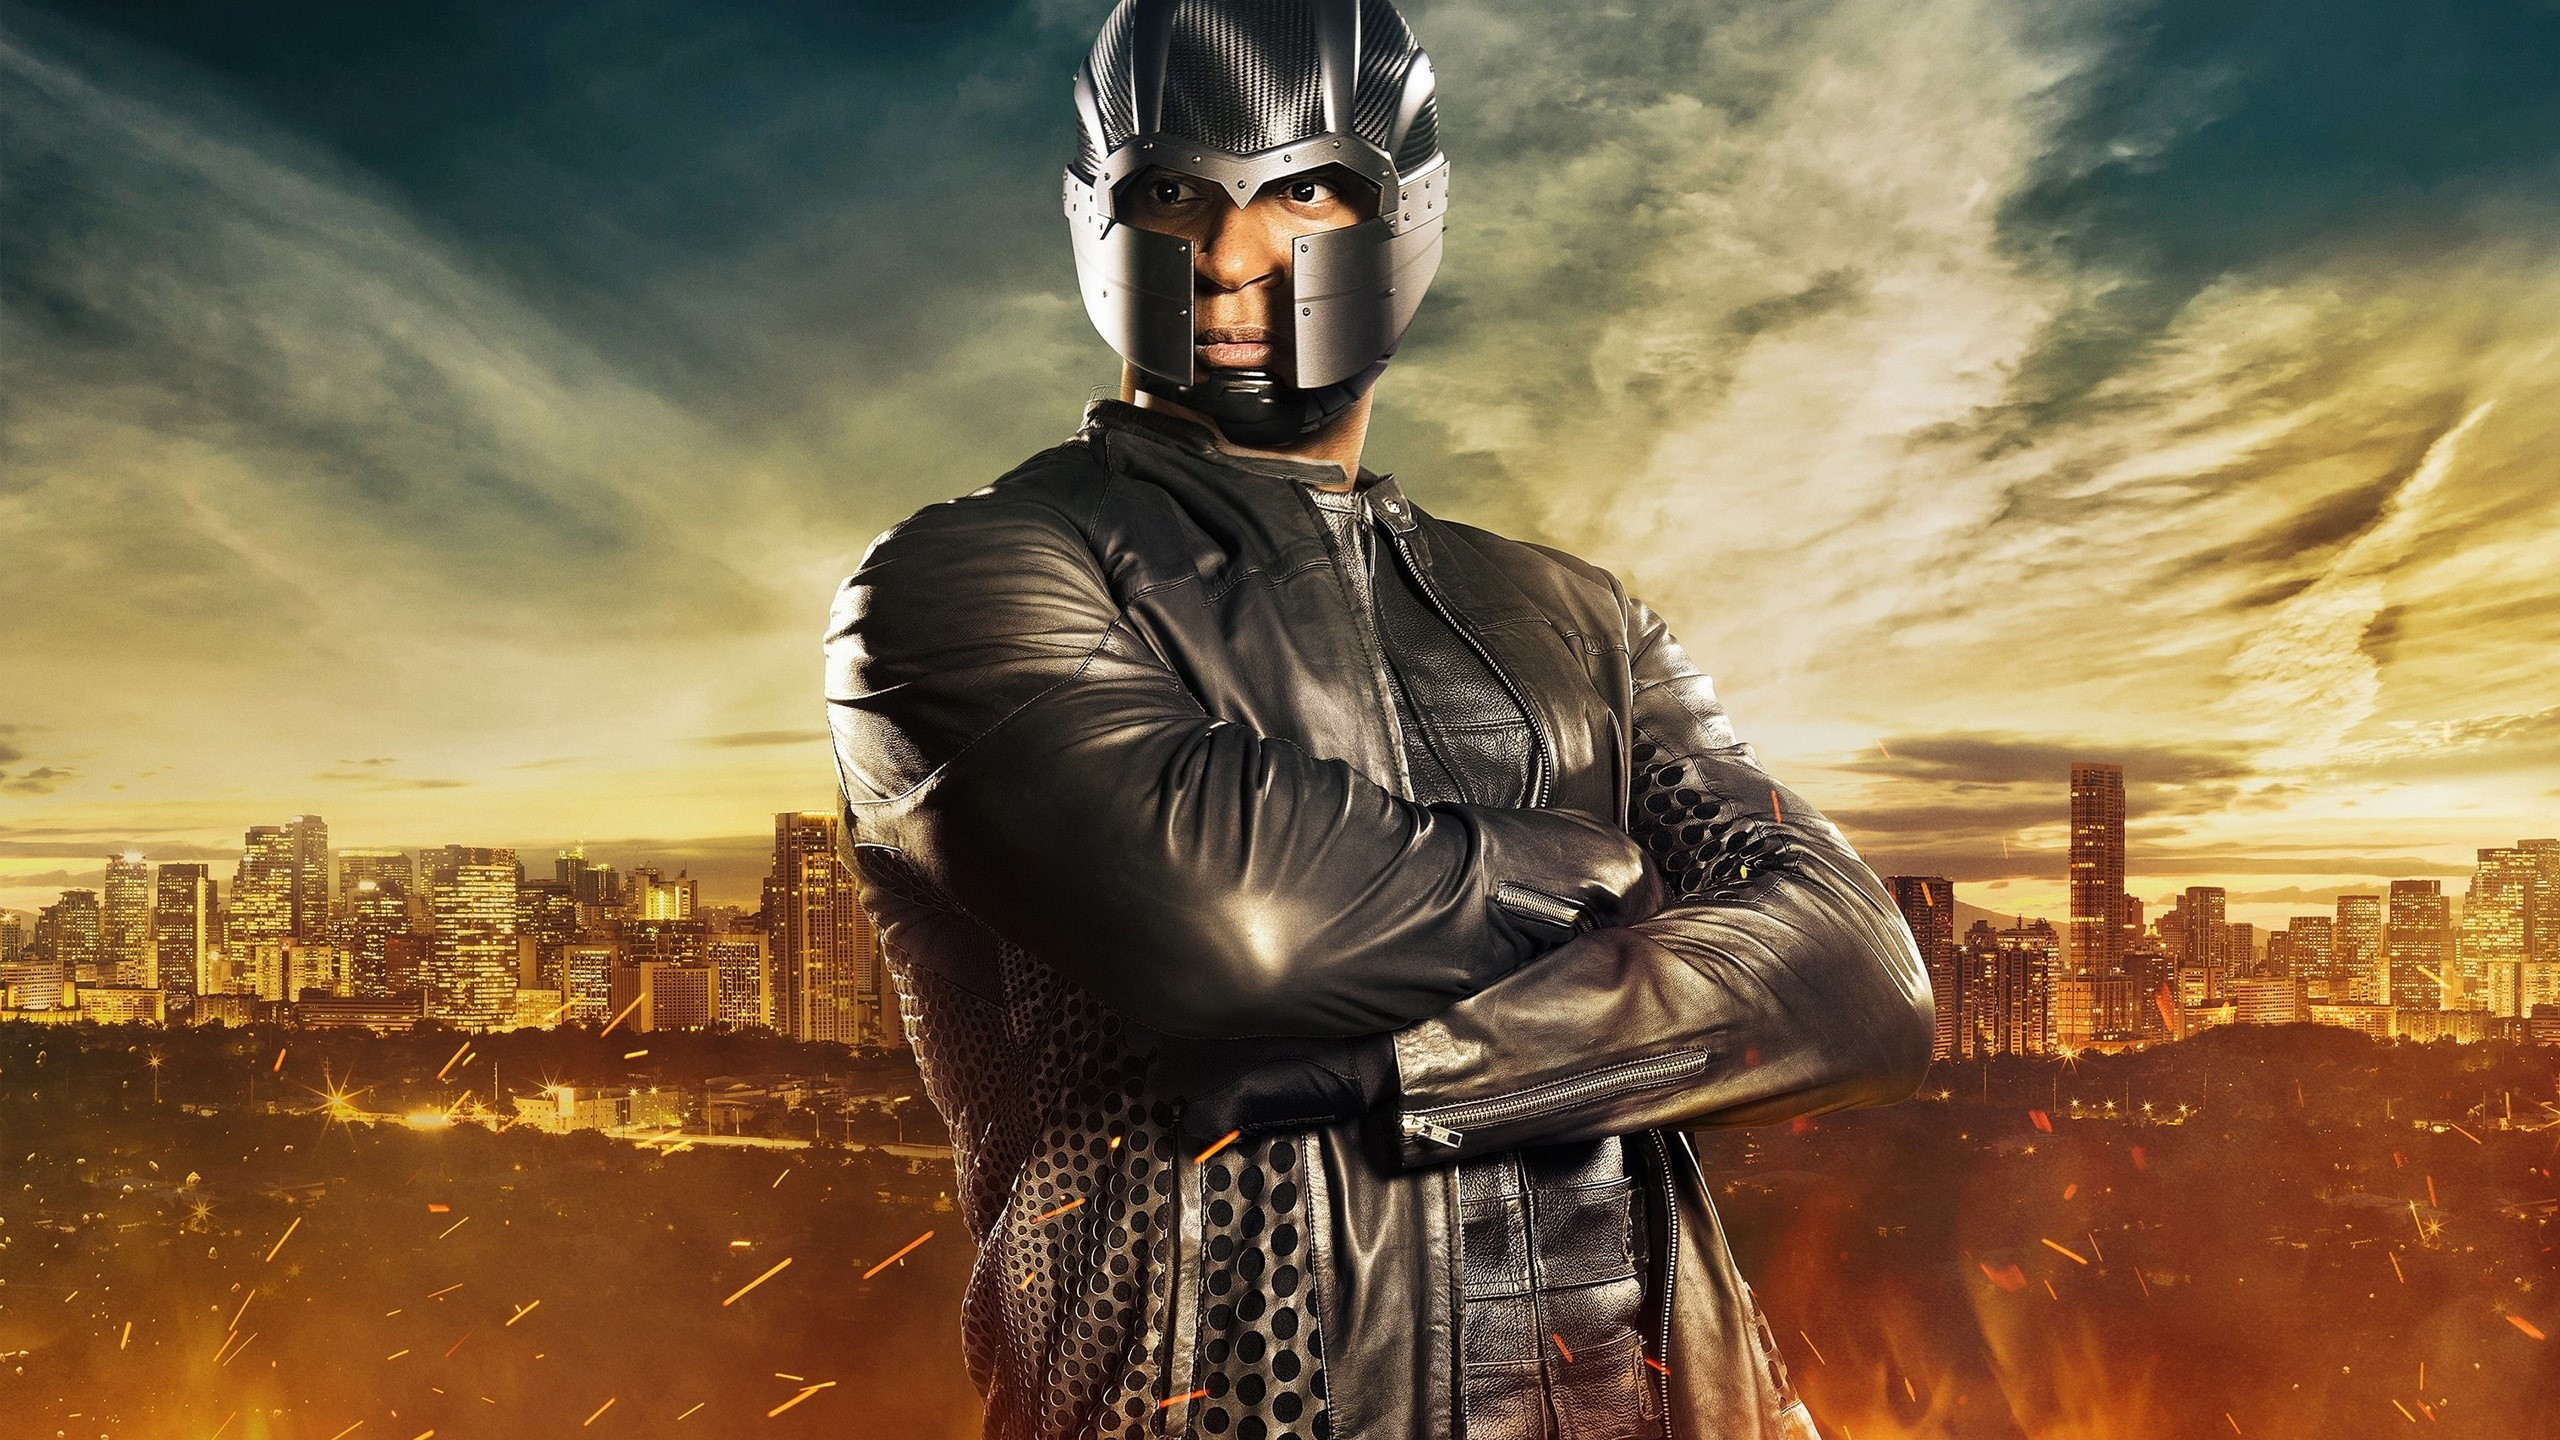 Wallpaper John Diggle from Arrow